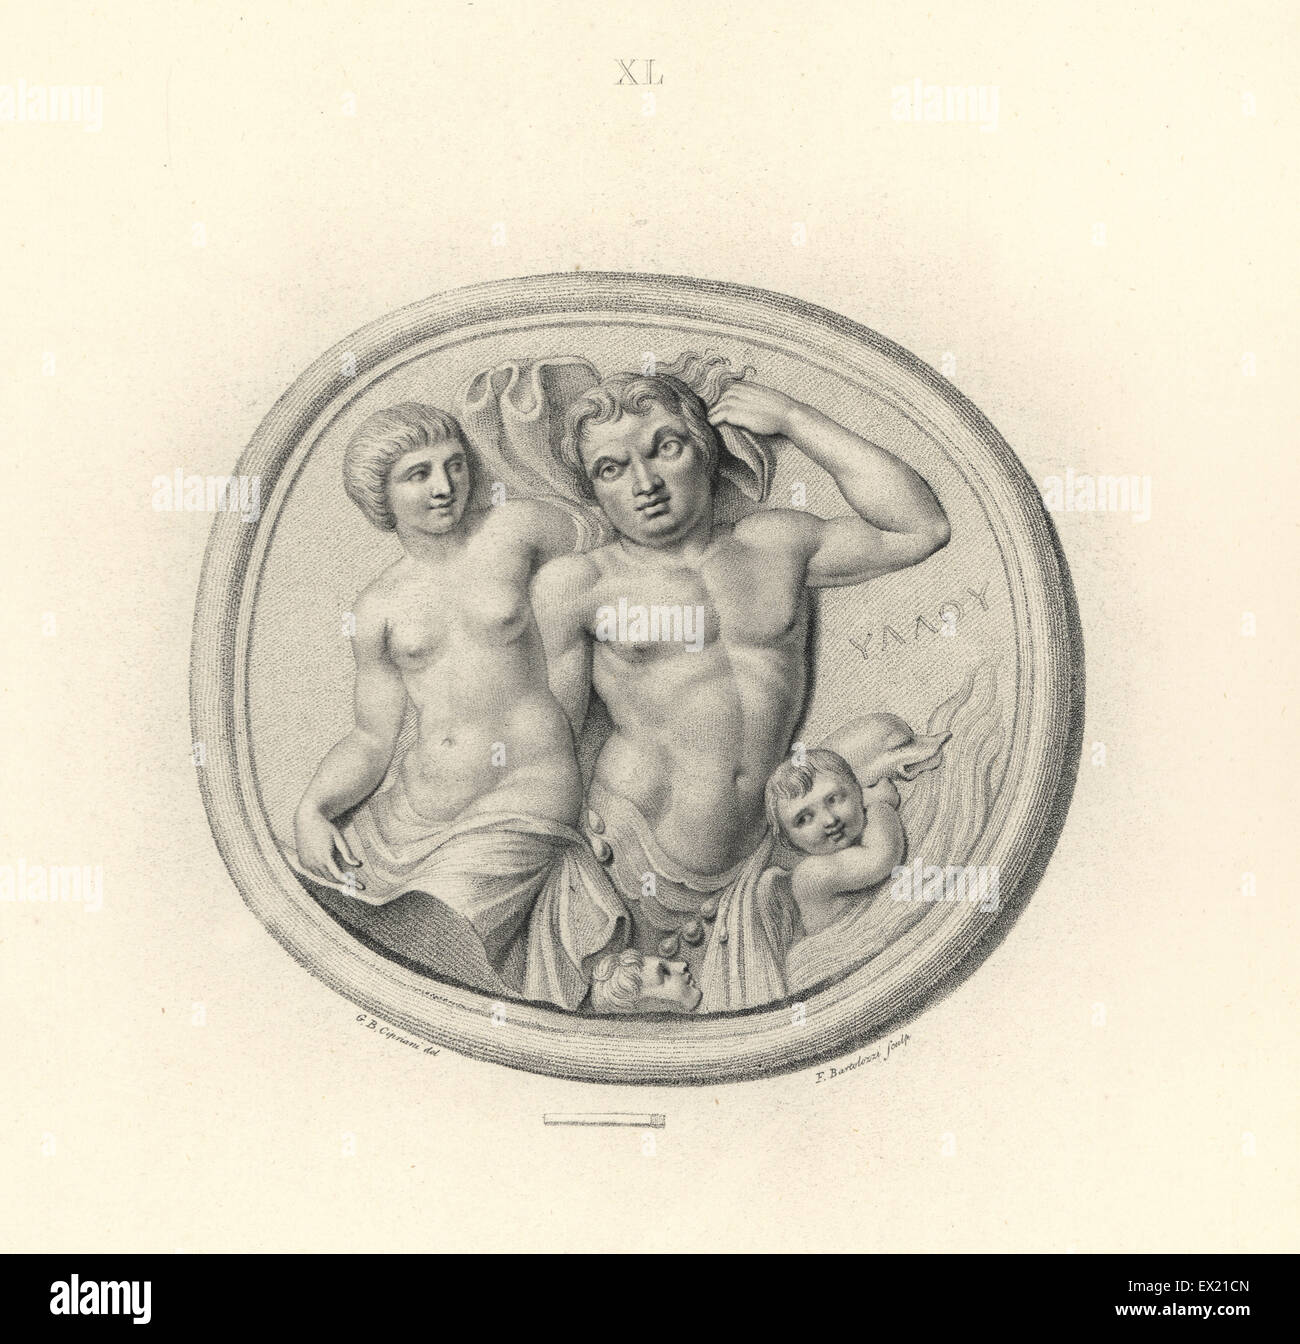 Classical sea gods: Nerites and a Nereid, sea nymph, dolphin, boys. Copperplate engraving by Francesco Bartolozzi - Stock Image